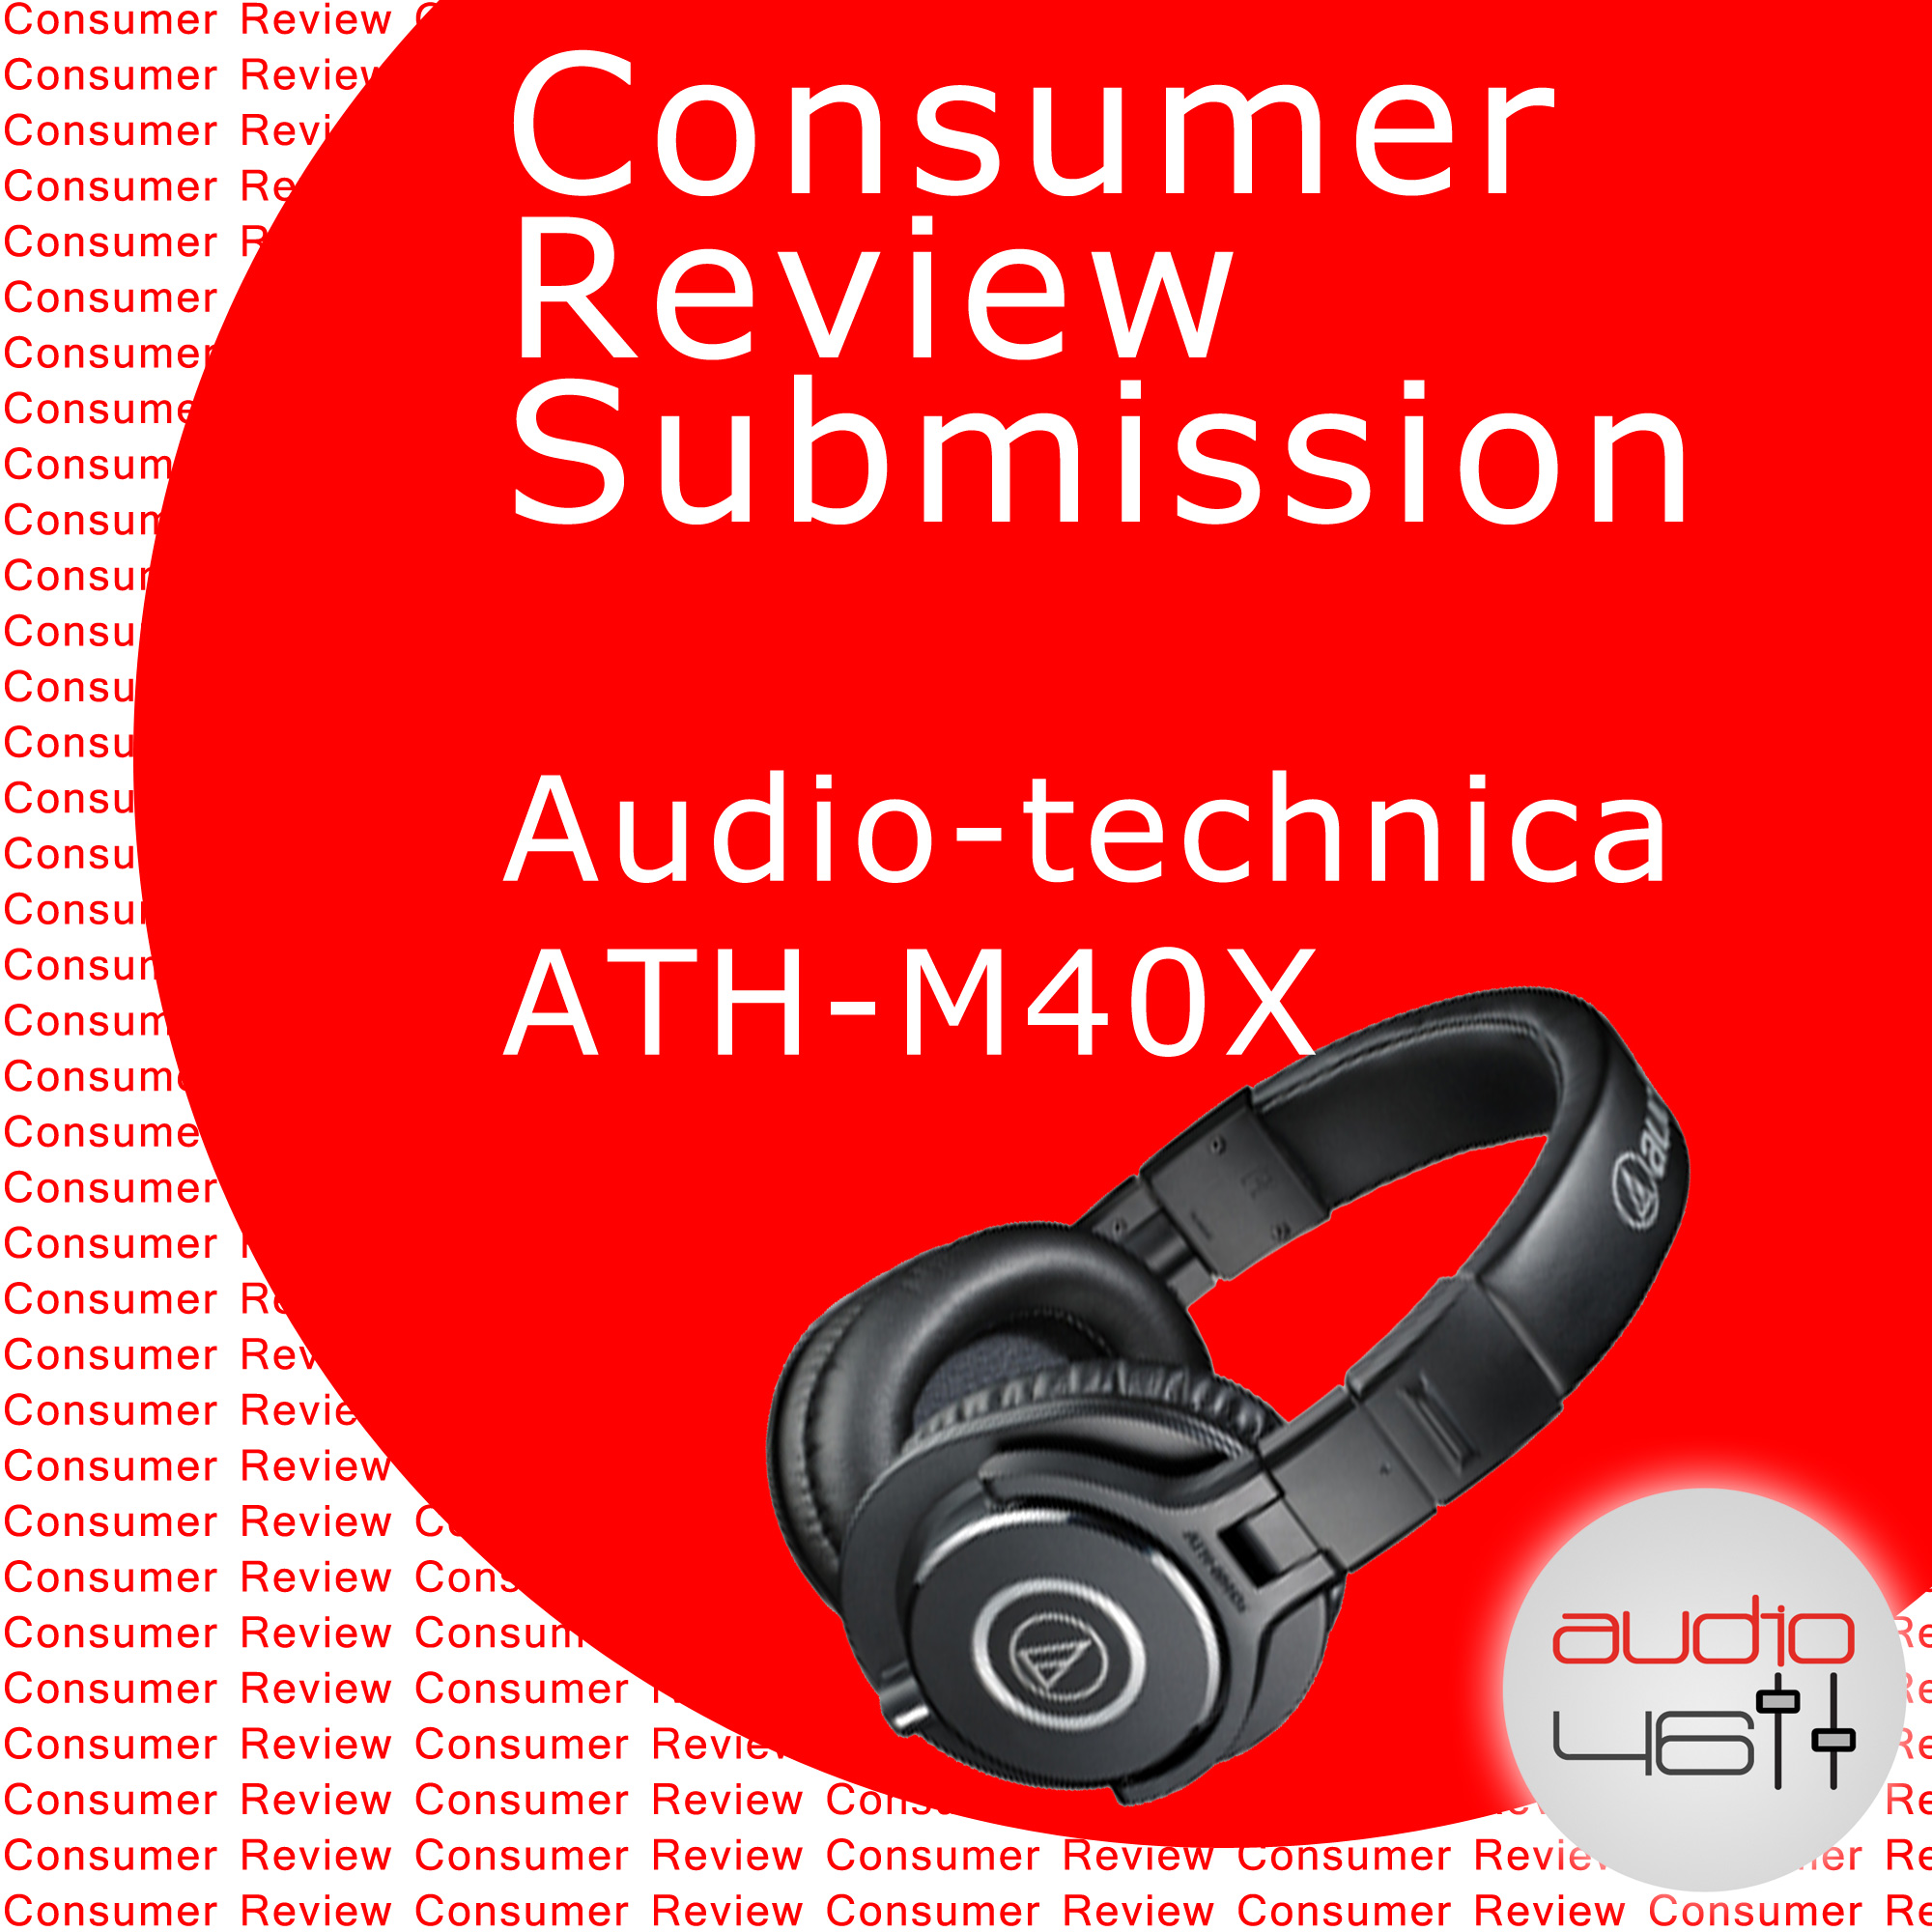 Consumer Review – Audio-technica ATH-M40